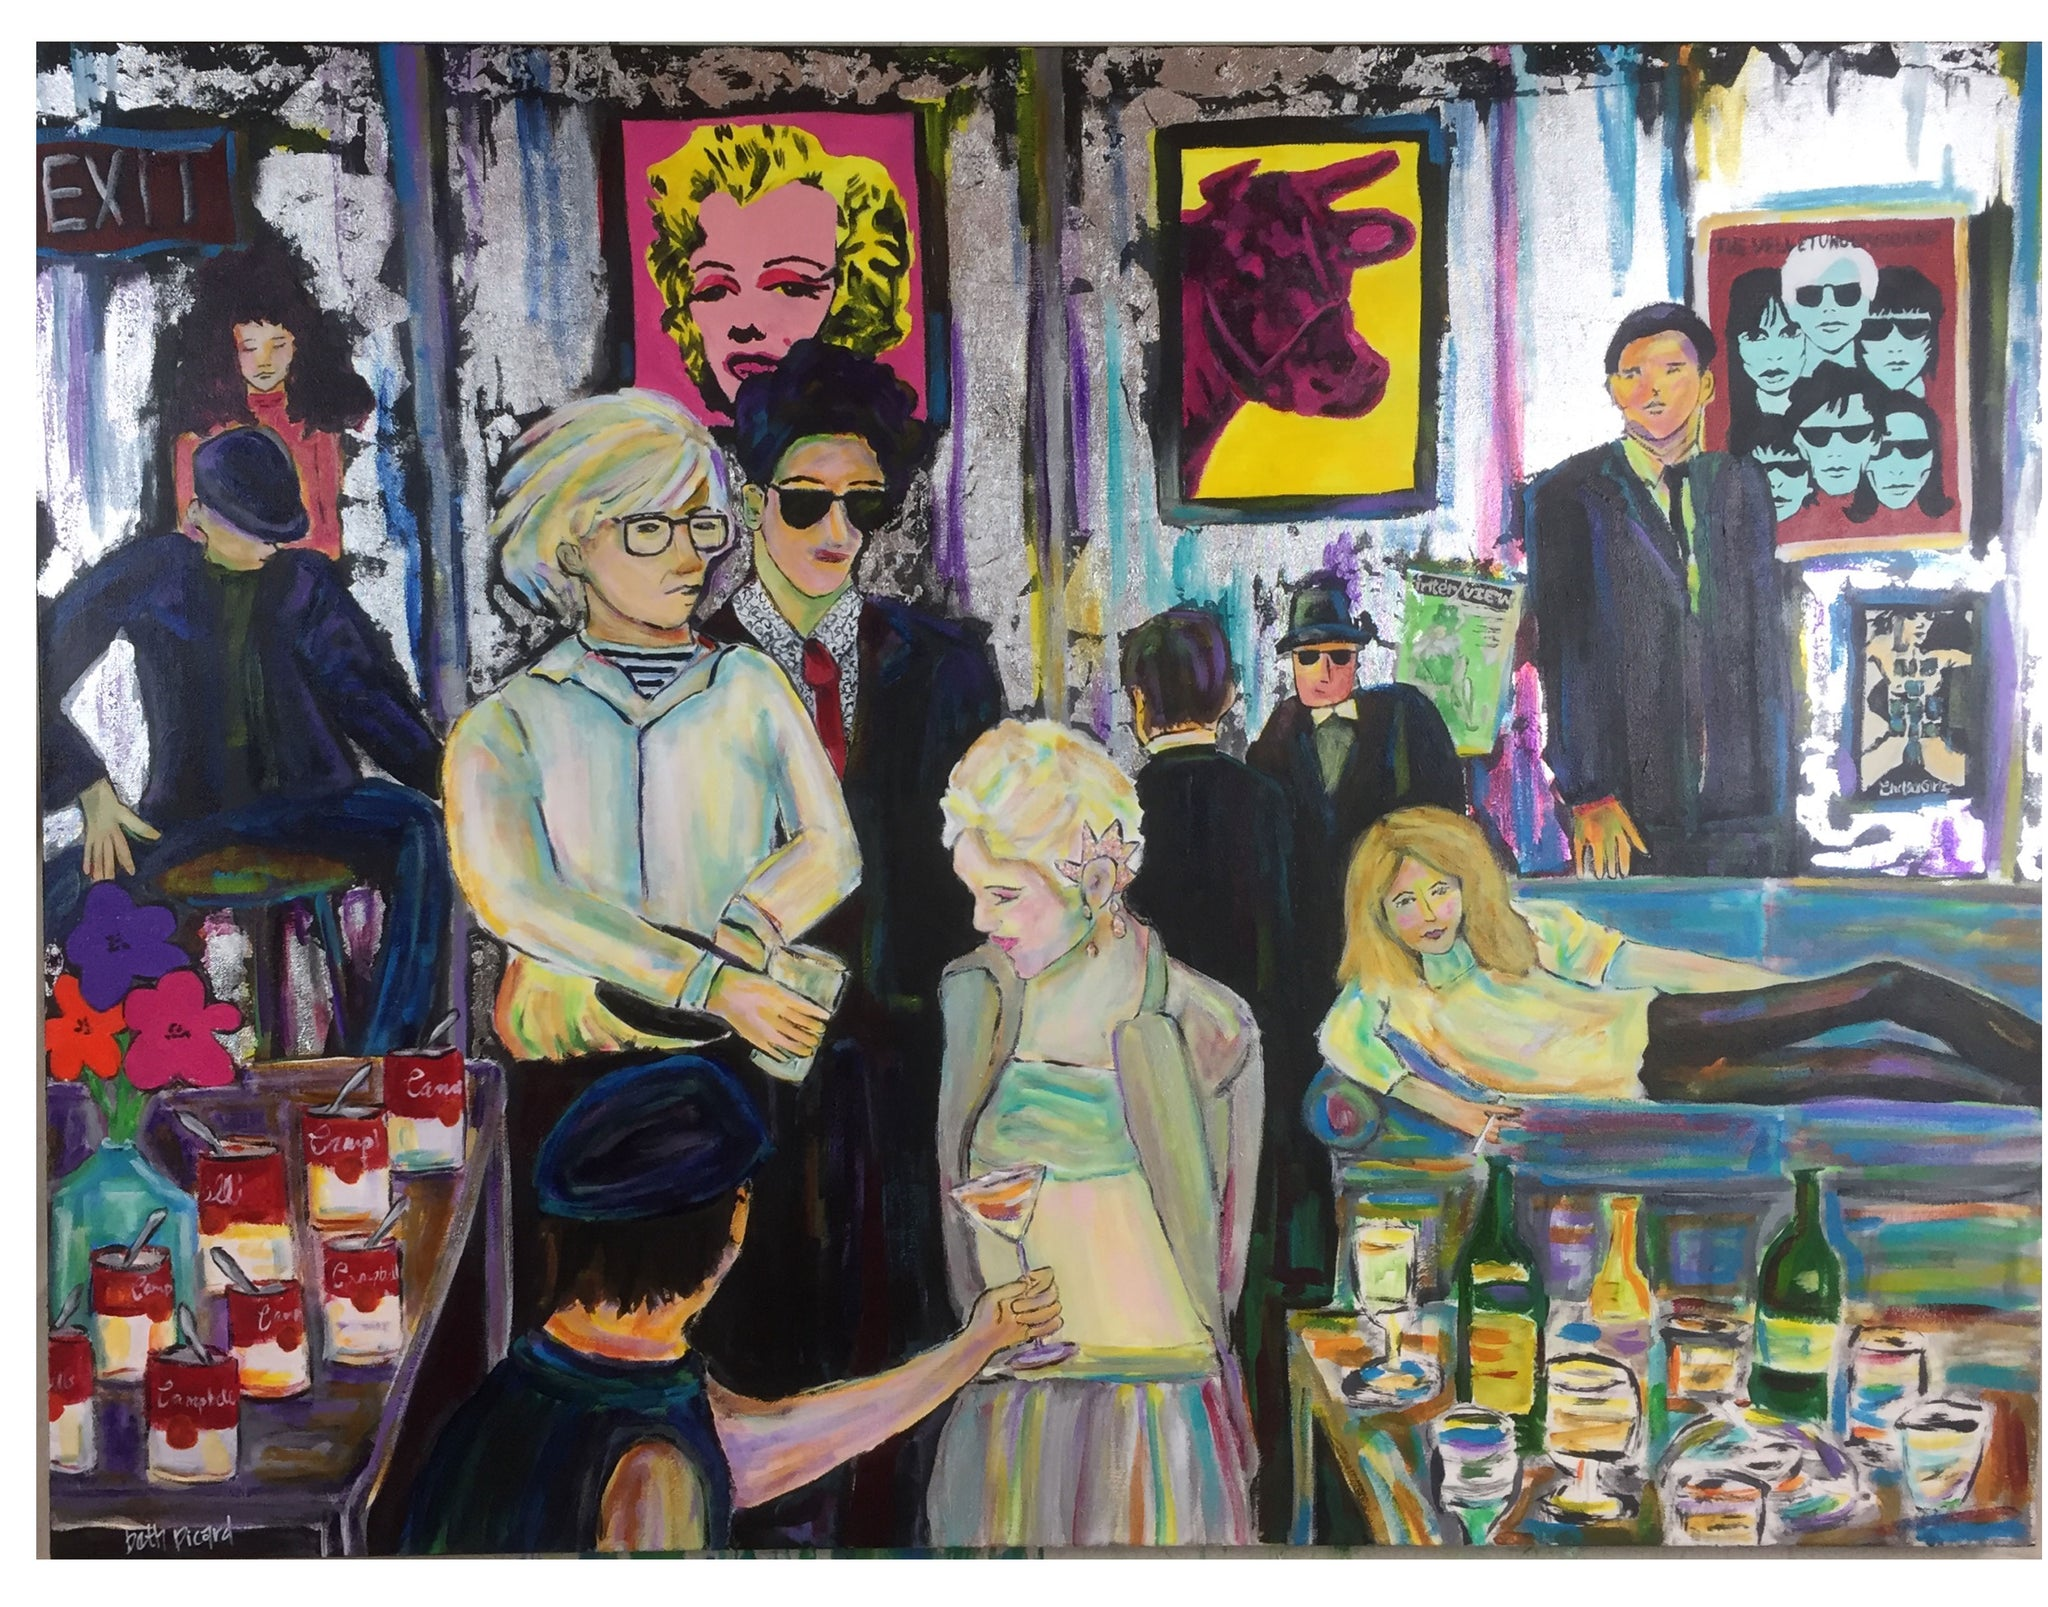 andy warhol throws a party